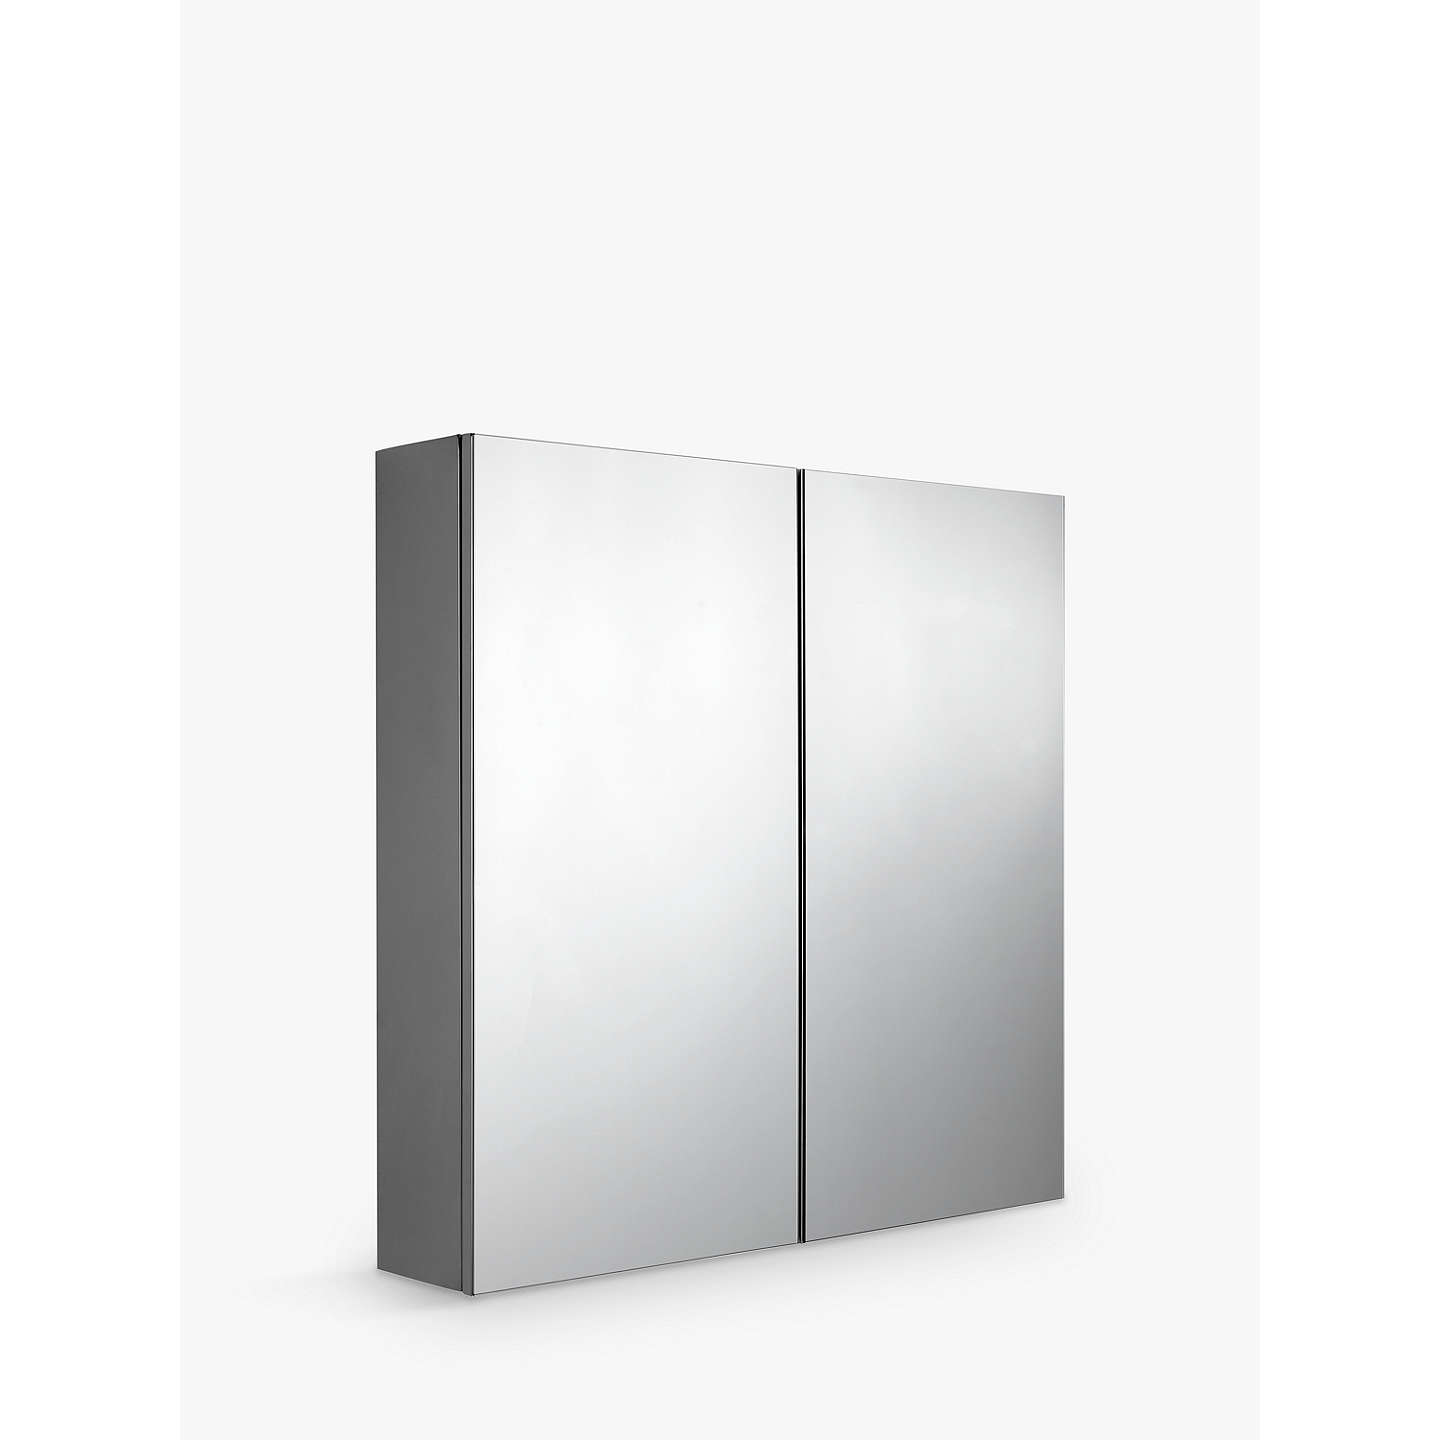 John lewis double mirrored bathroom cabinet at john lewis for Bathroom cabinets john lewis uk